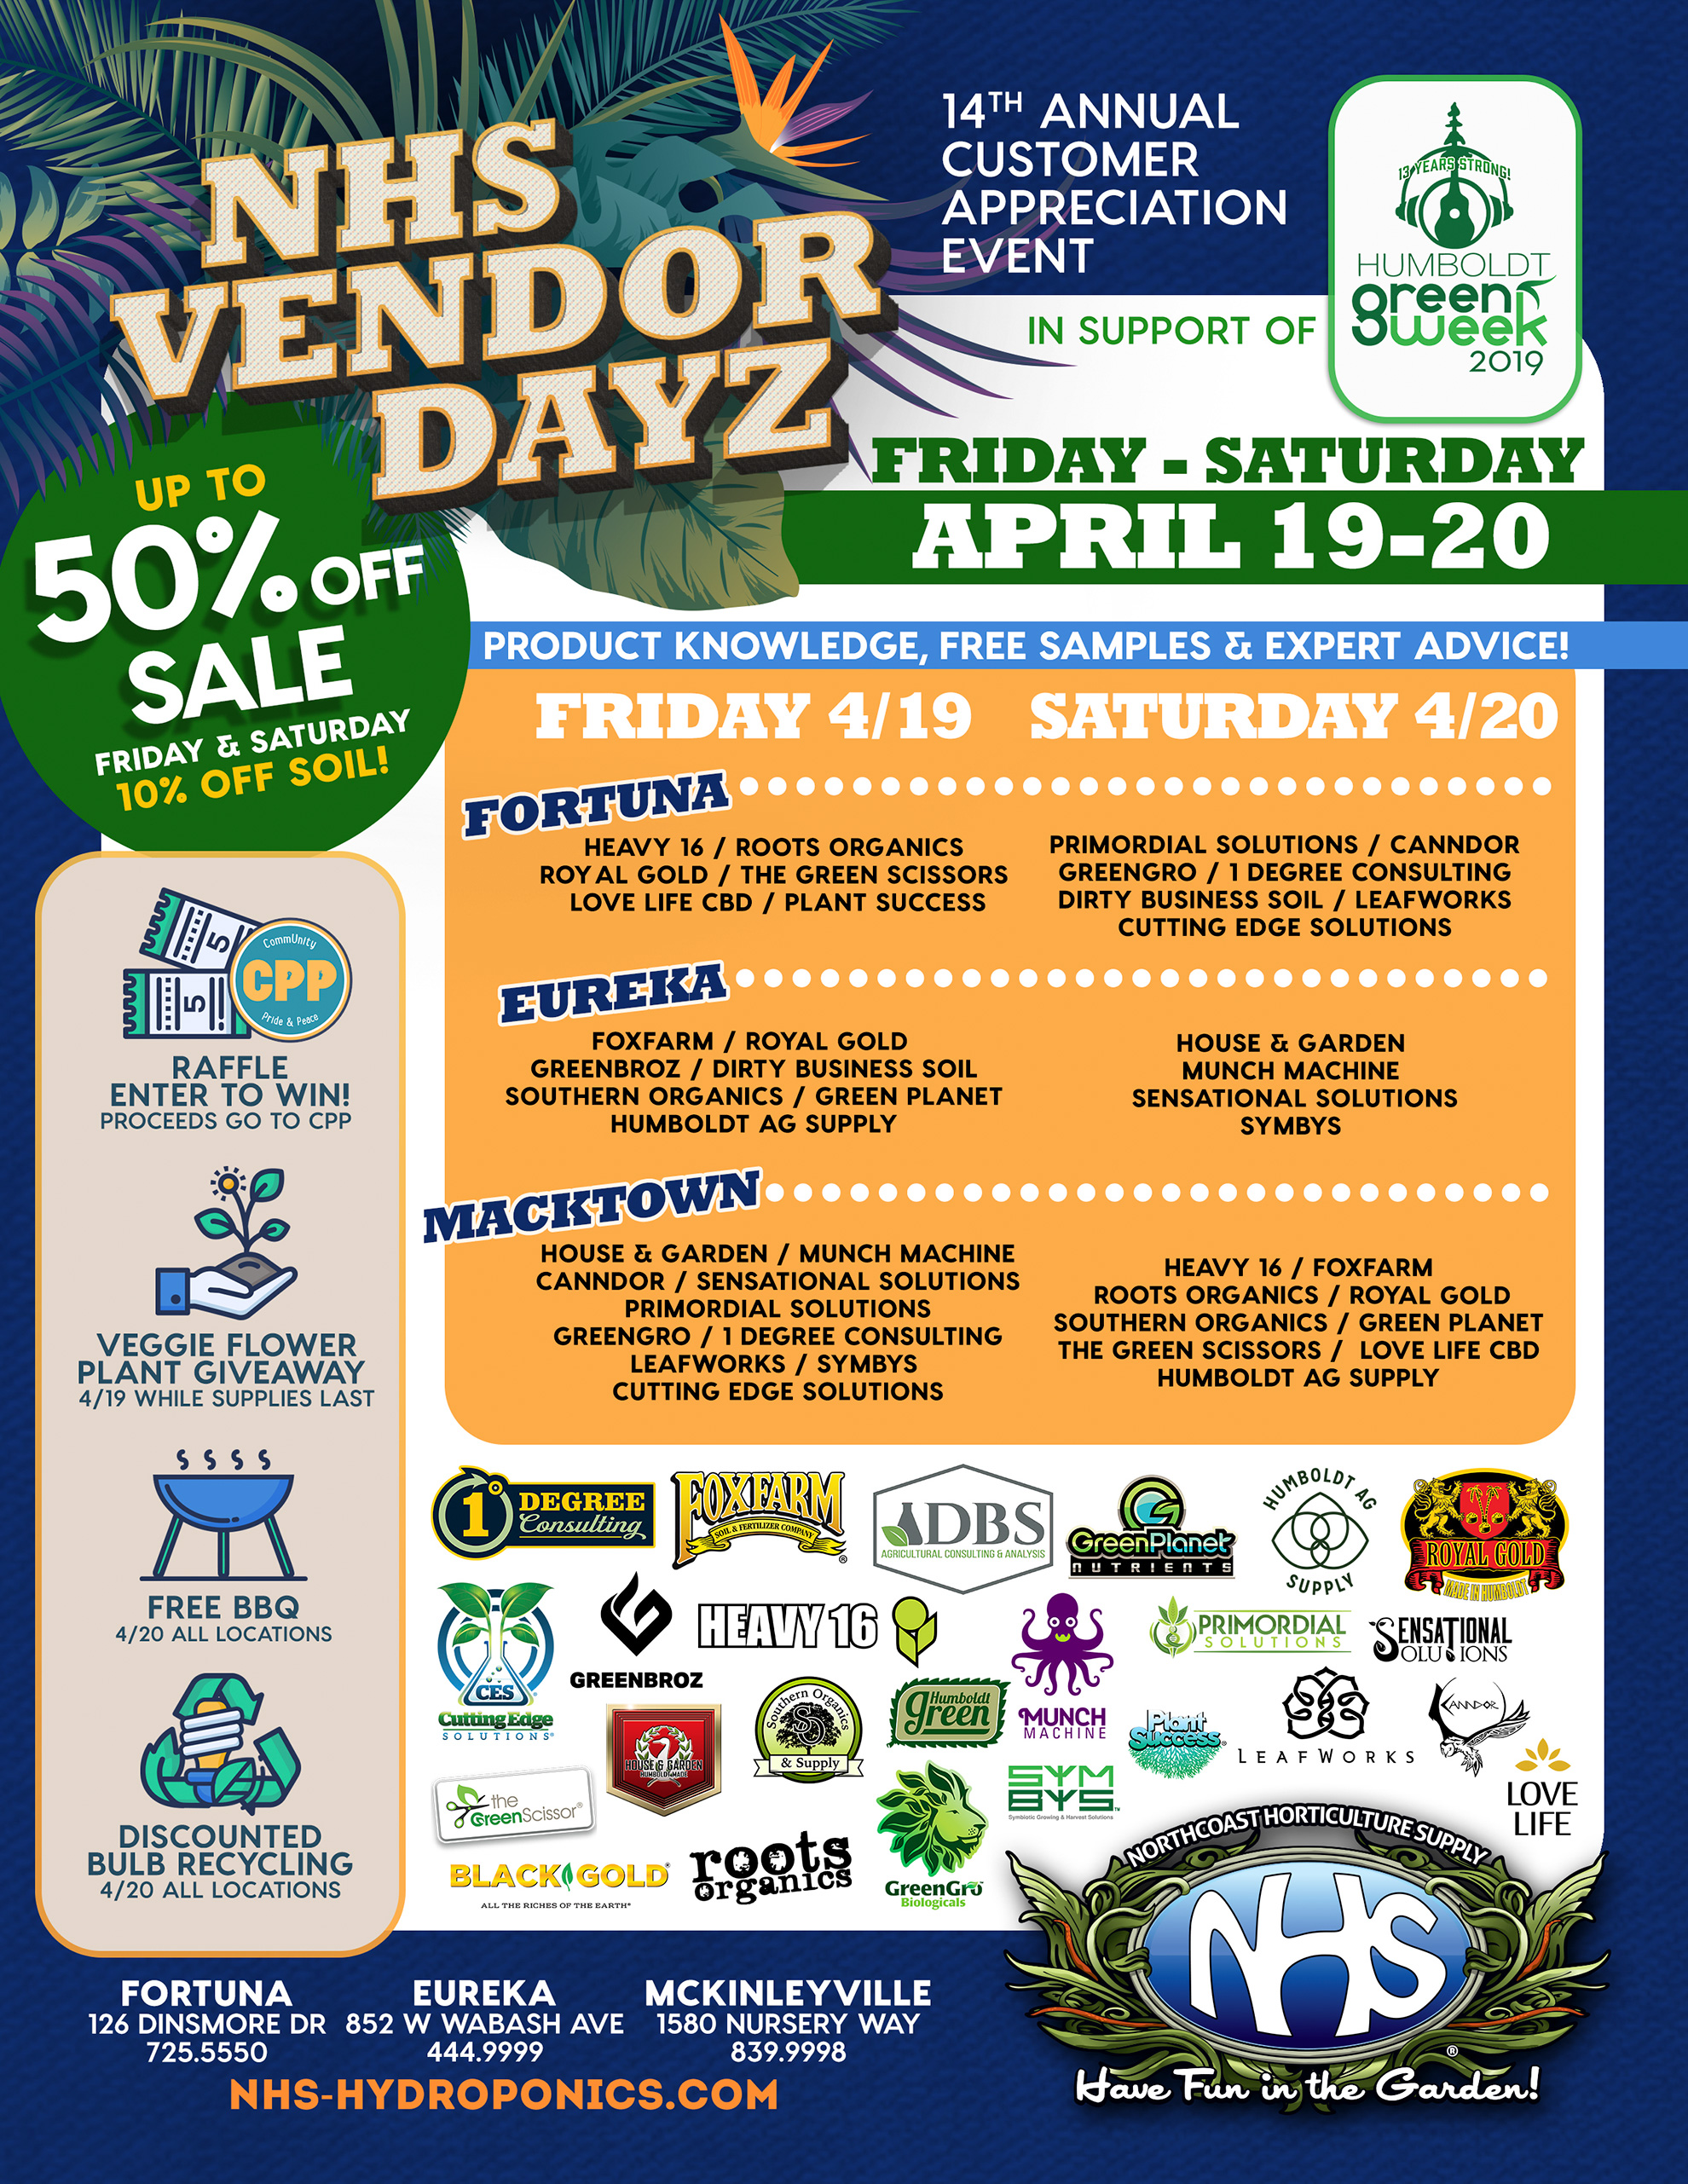 Northcoast Horticulture Supply Vendor Dayz Event - NHS-Hydroponics